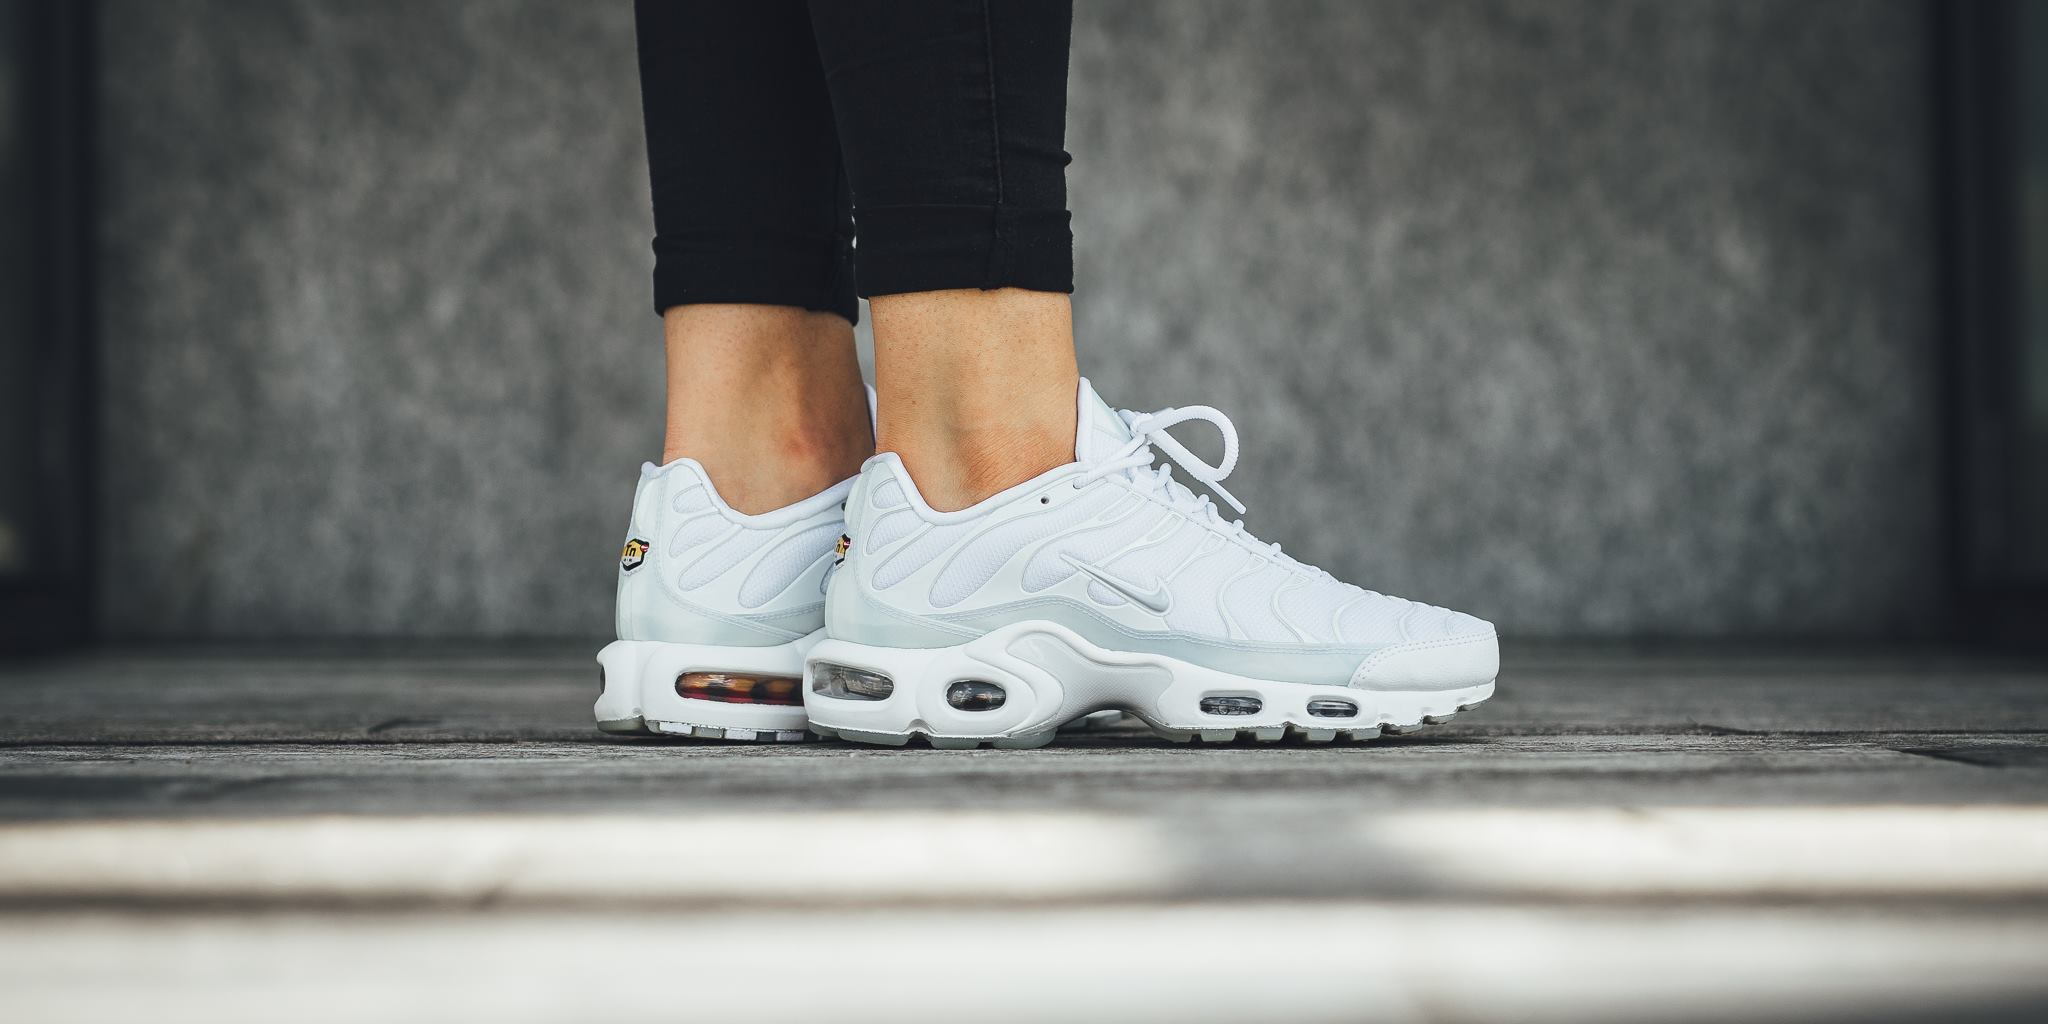 Nike Air Max Plus TN Tuned 1 University Rot Pure Platinum